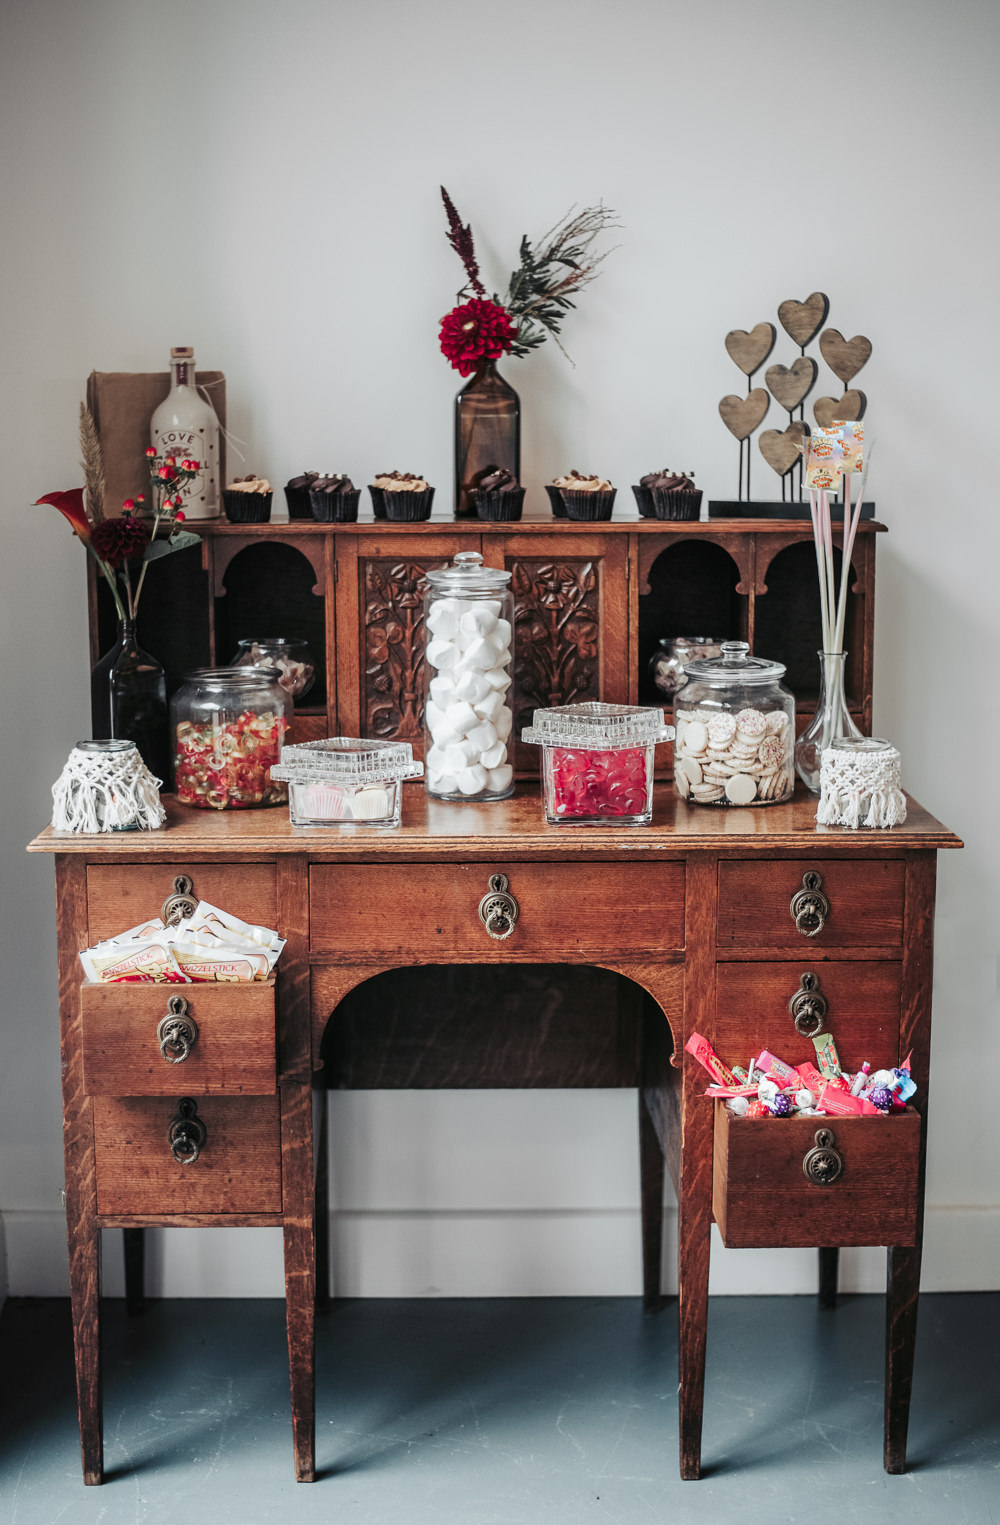 Table Sweets Sweetie Furniture Dresser Eco Friendly Wedding Inspiration Sarah Jayne Photography